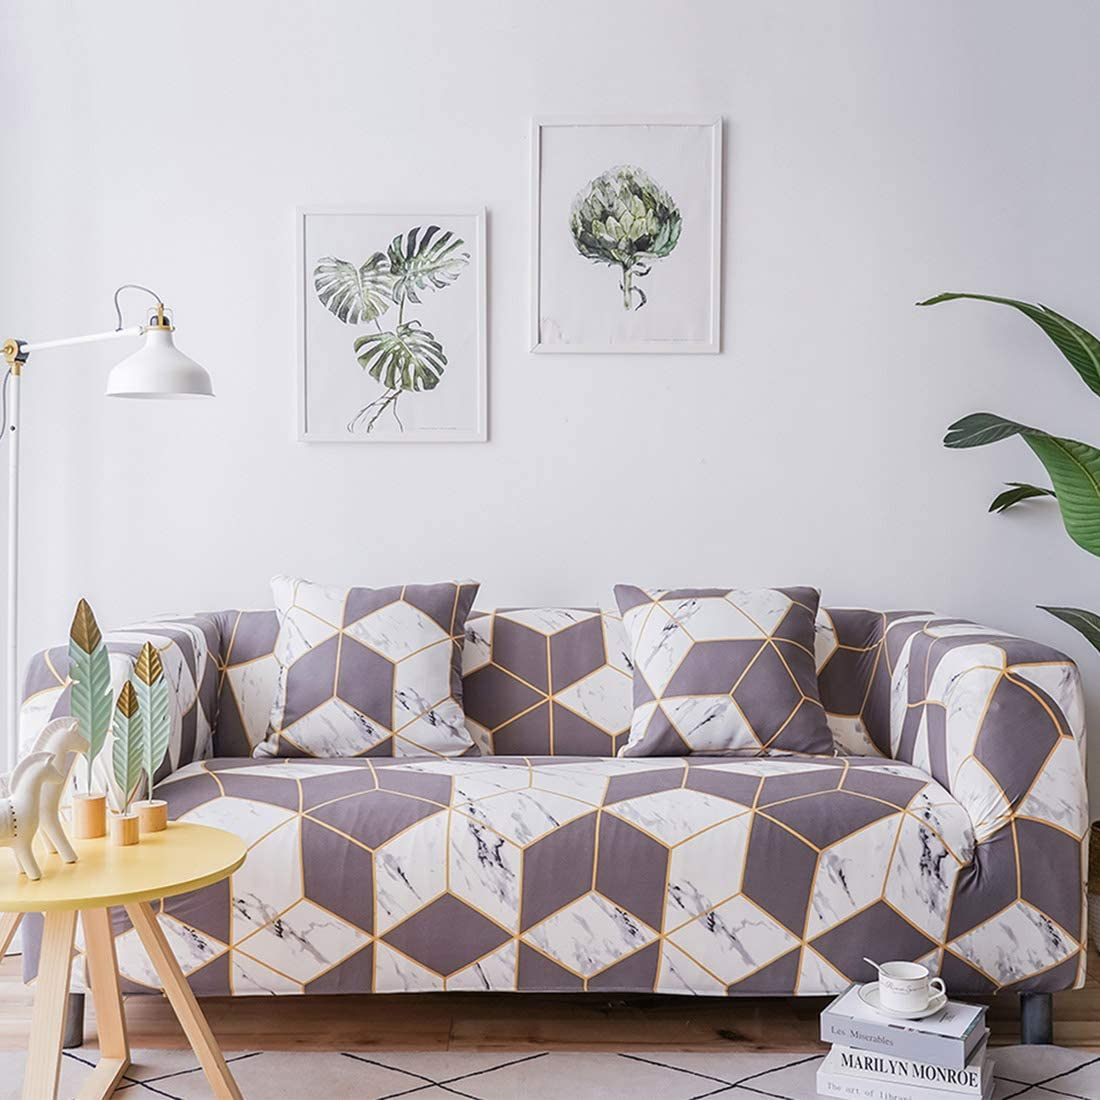 Chozan Pattern Sofa Slipcovers Stretch Printed Sofa Cover with 2 Pillowcases for 2 Seat Cushion Couch Furniture Pet Protector Spandex Cover L-Shape Available(Magic-Cube, Loveseat)